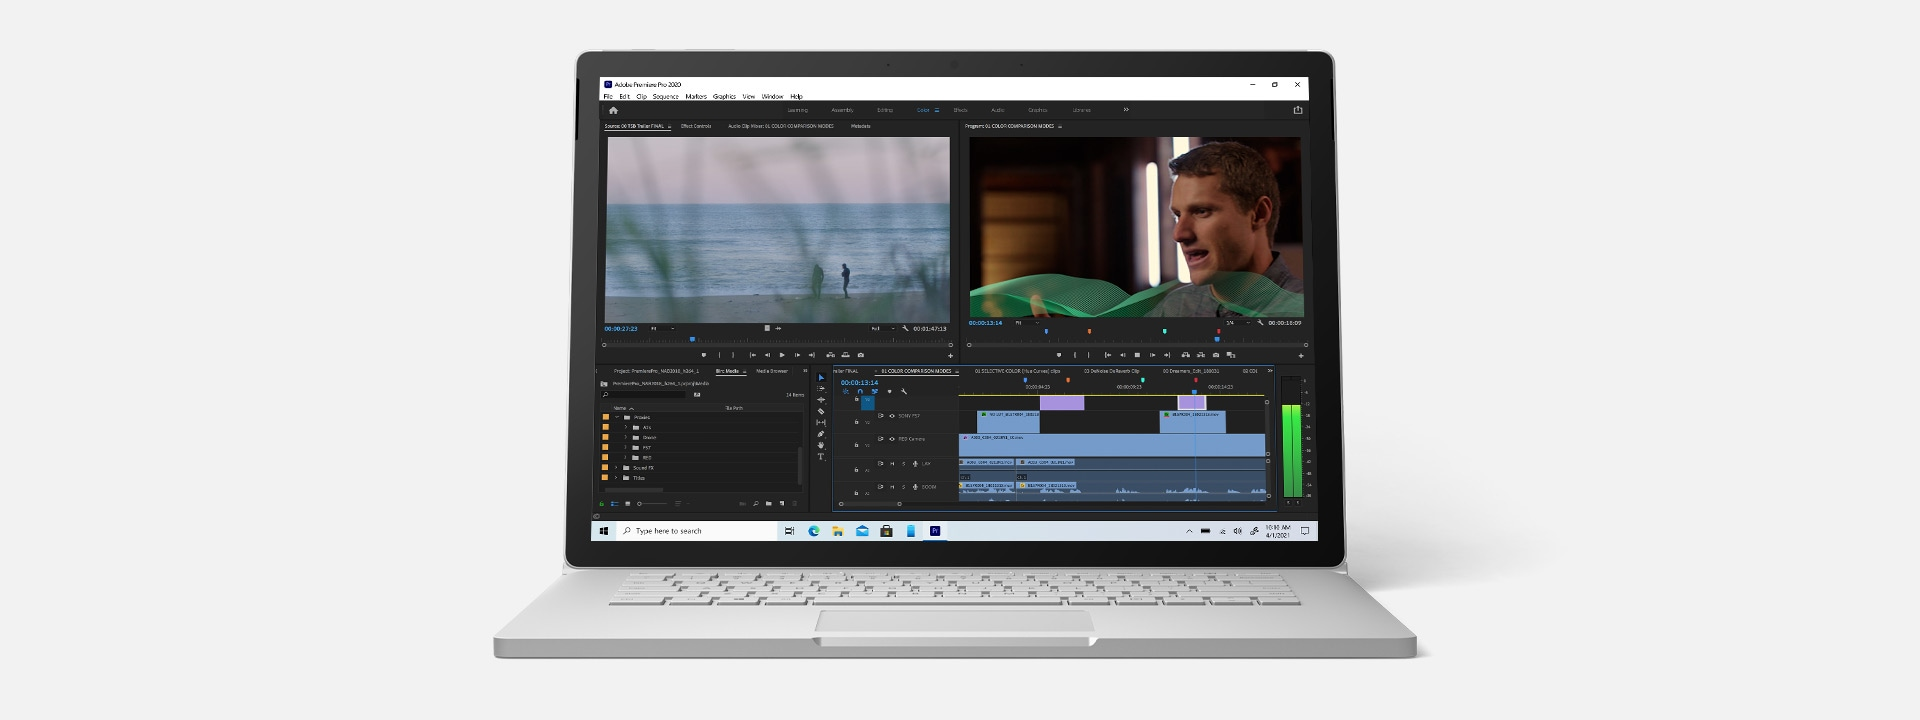 Surface Book 3 running Adobe Premiere